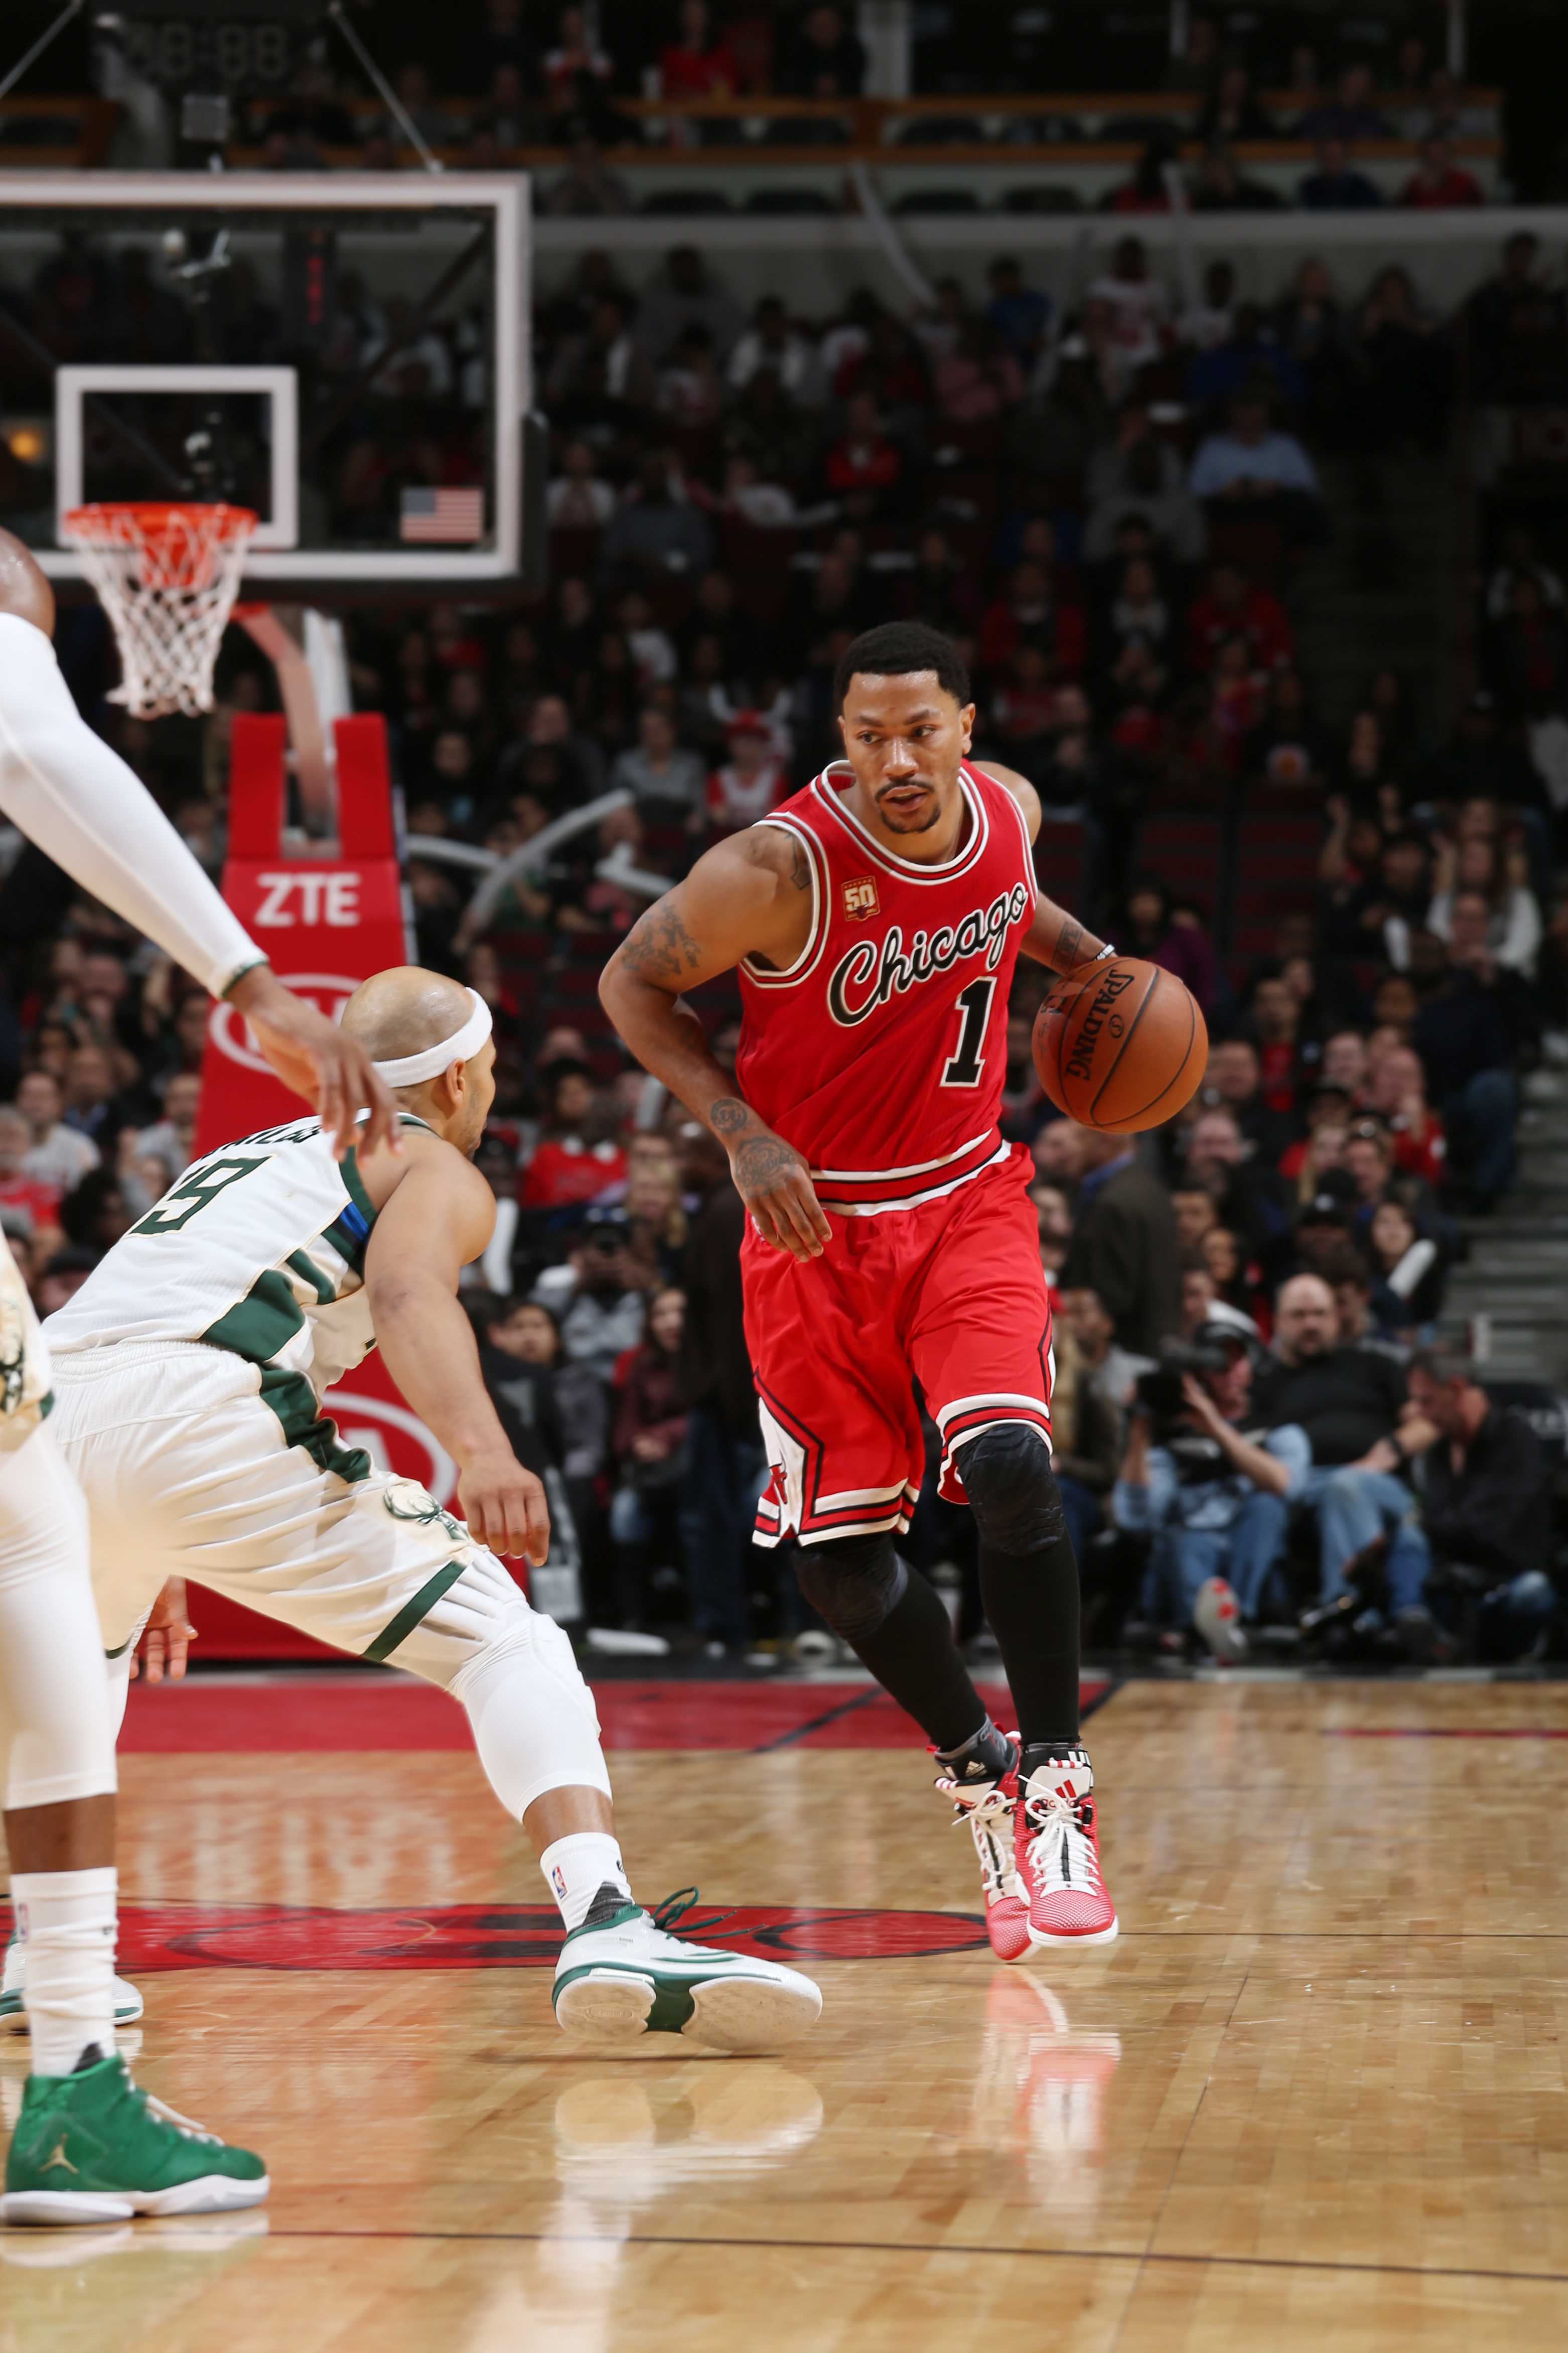 CHICAGO, IL  - MARCH 7: Derrick Rose #1 of the Chicago Bulls drives to the  basket against the Milwaukee Bucks during the game on March 7, 2016 at United Center in Chicago, Illinois. (Photo by Gary Dineen/NBAE via Getty Images)